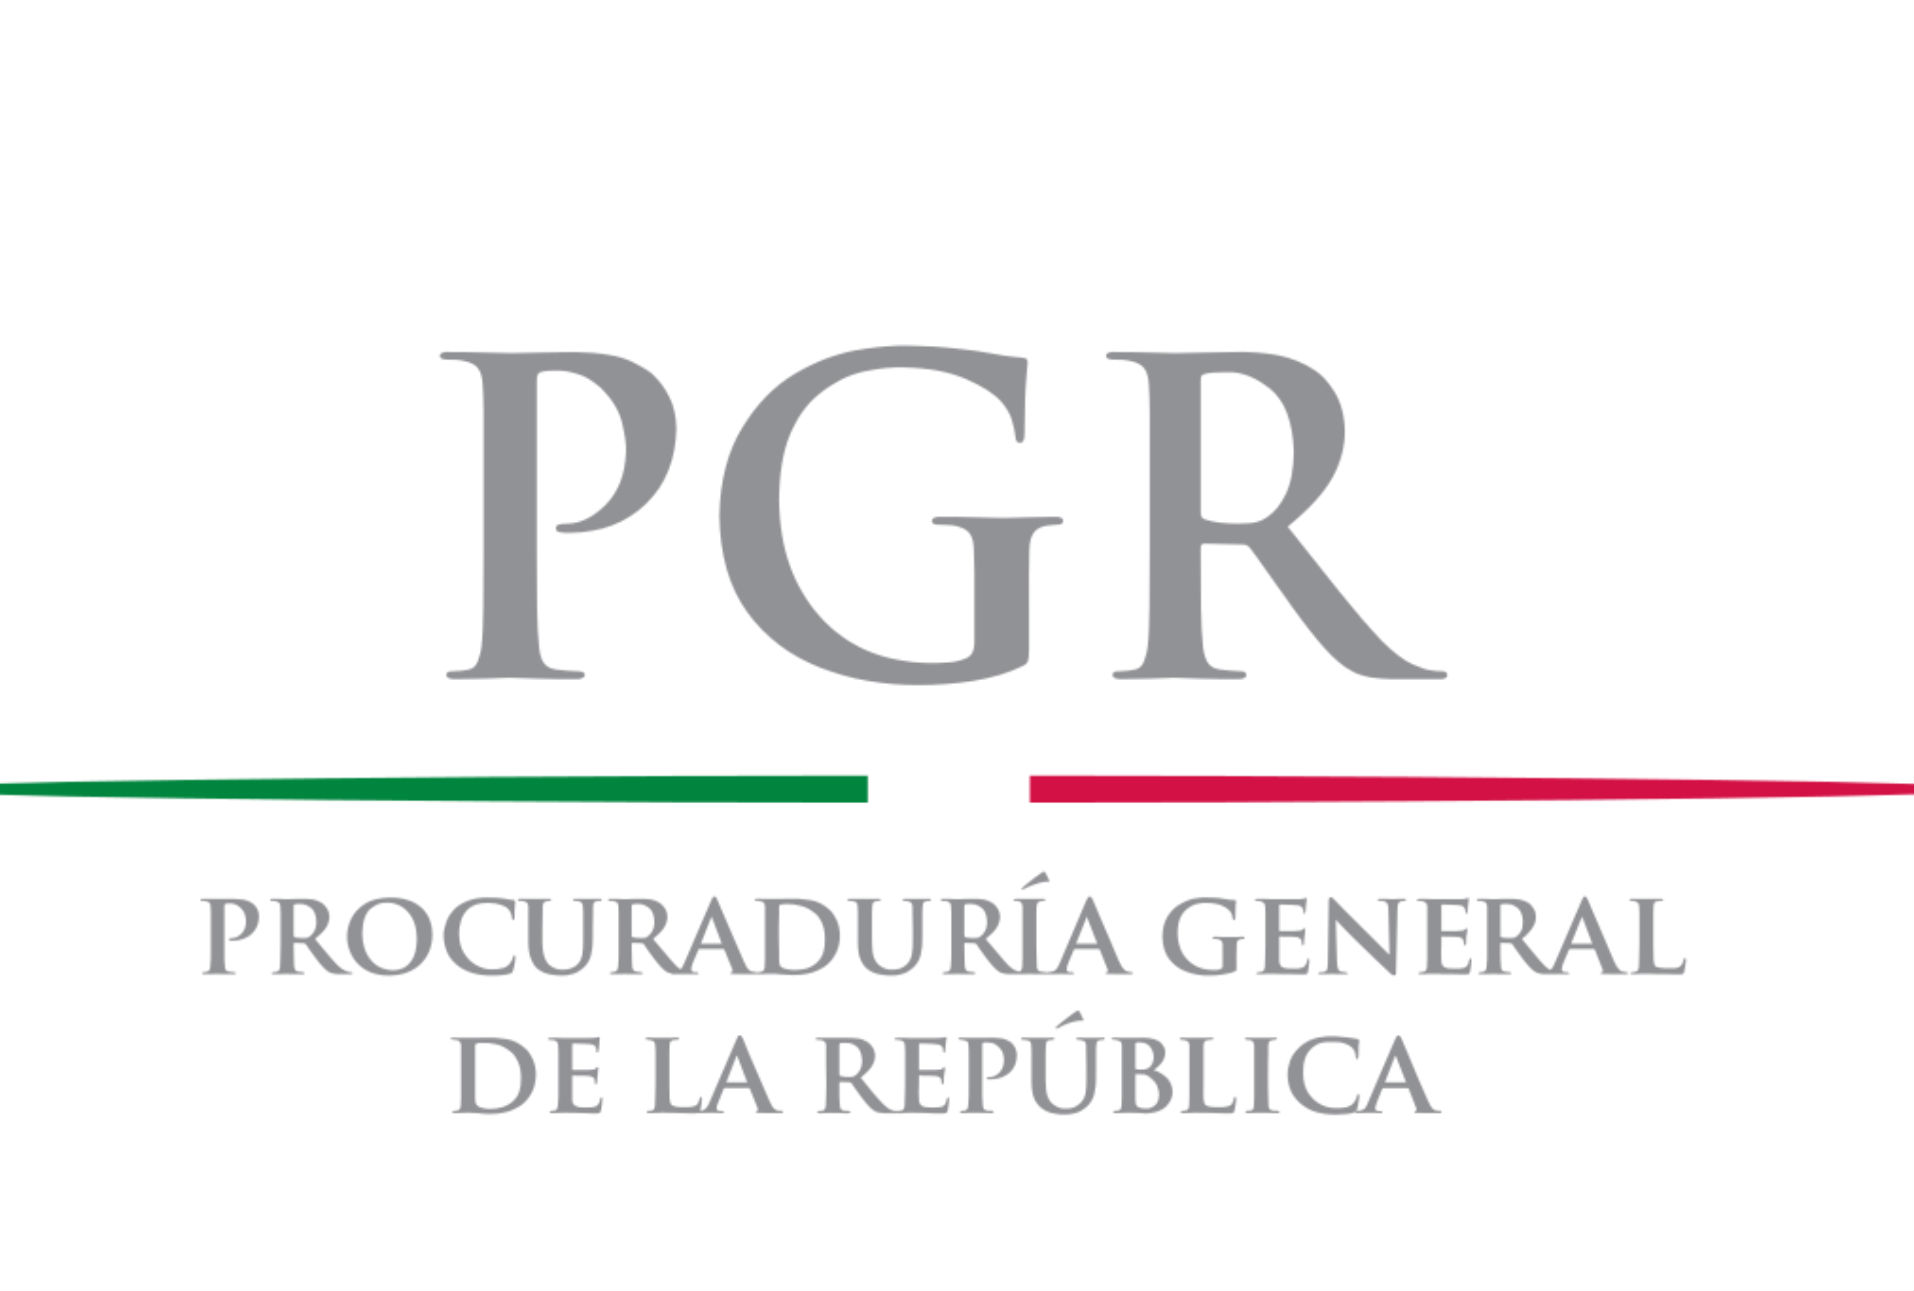 PGR compró Pegasus, software intrusivo para smartphones | R3D: Red en  Defensa de los Derechos Digitales